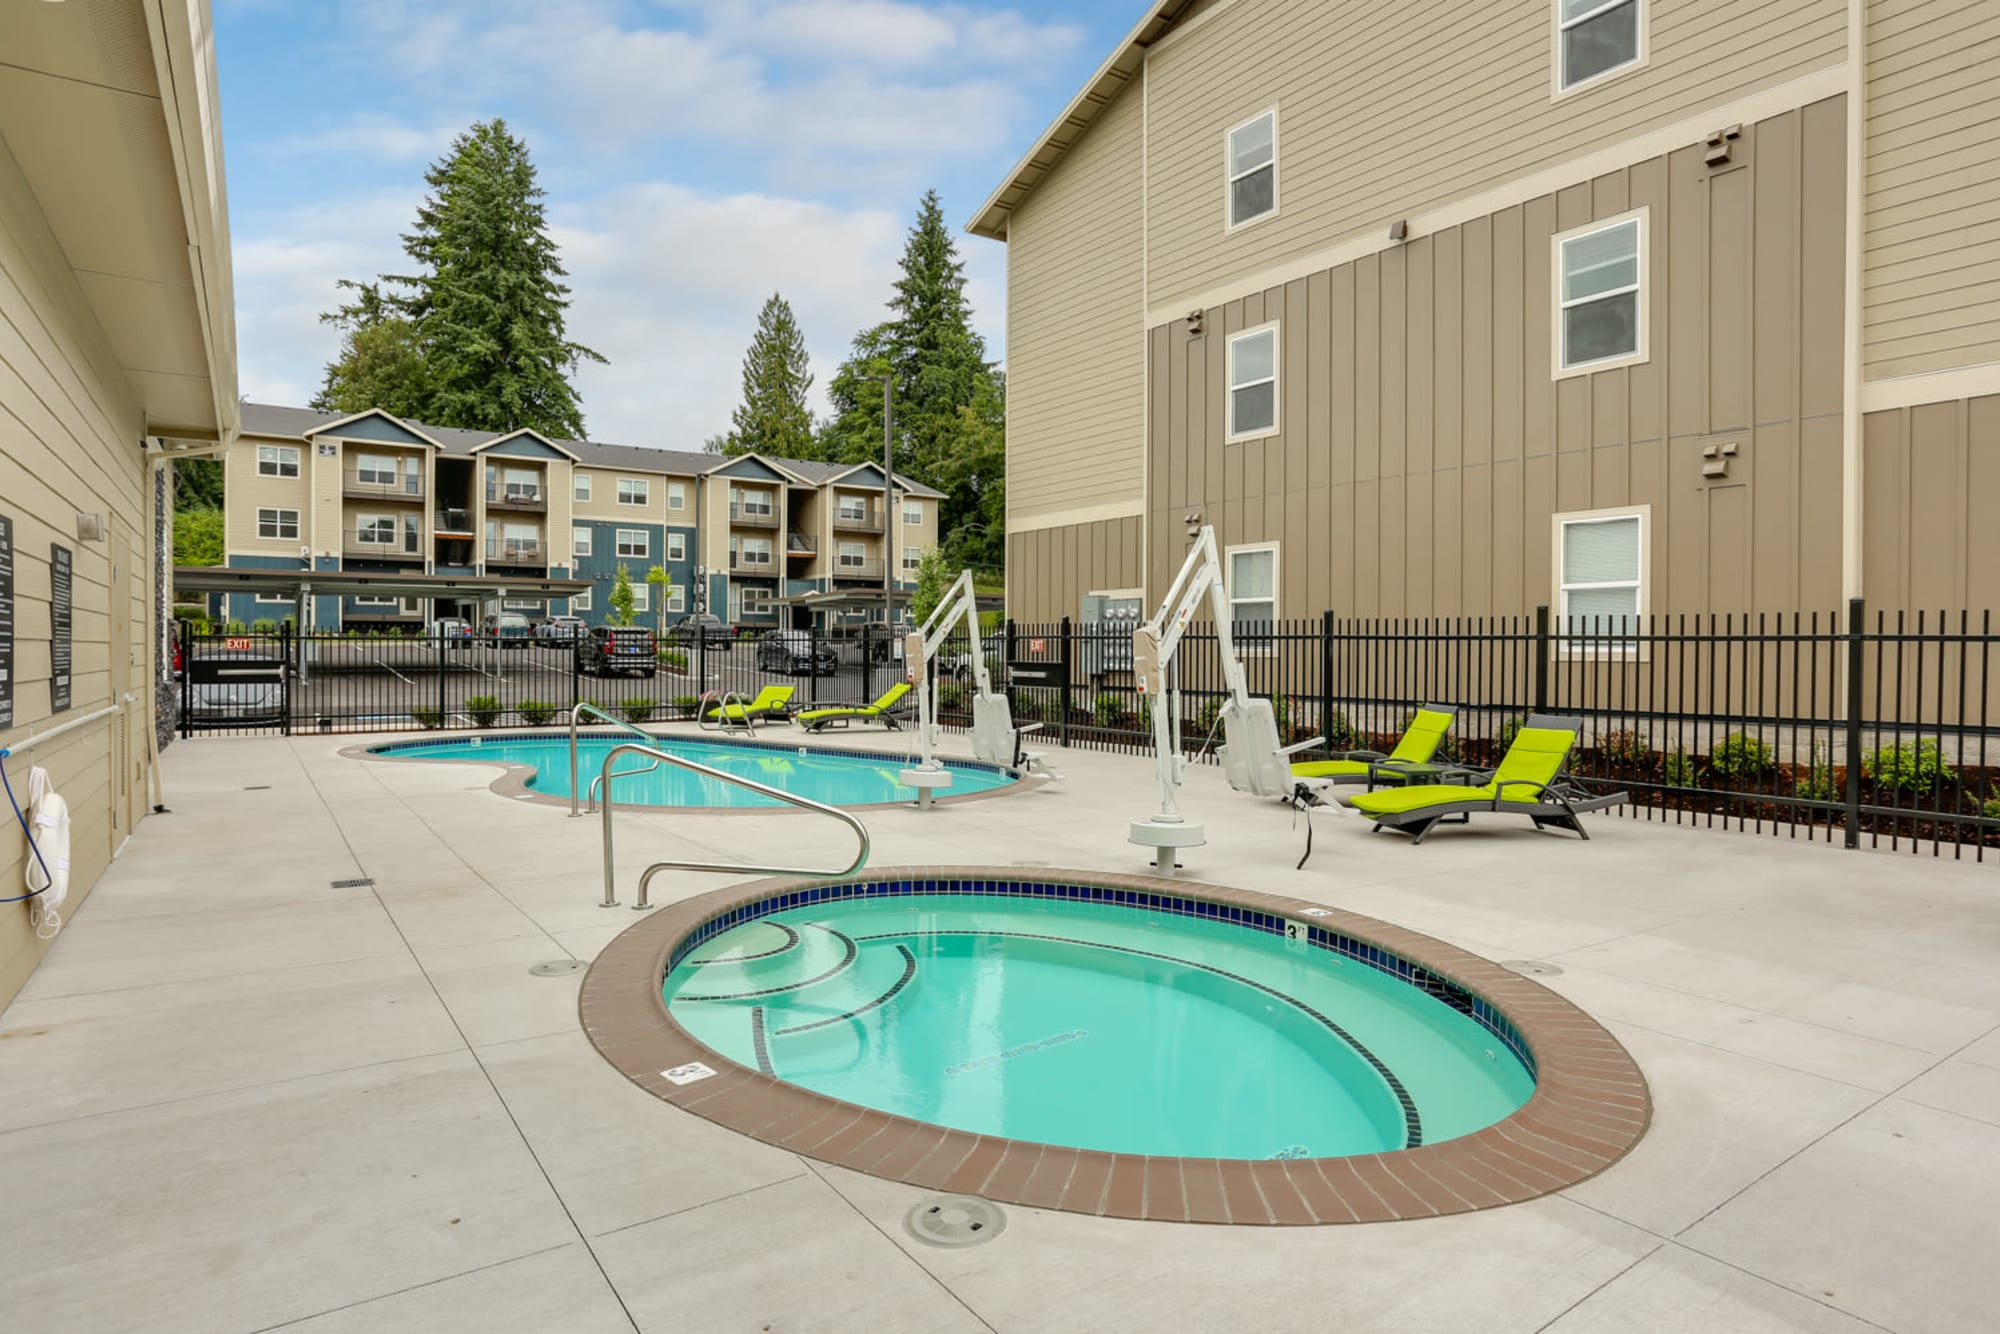 The cozy hot tub and relaxing swimming pool at Haven Hills in Vancouver, Washington